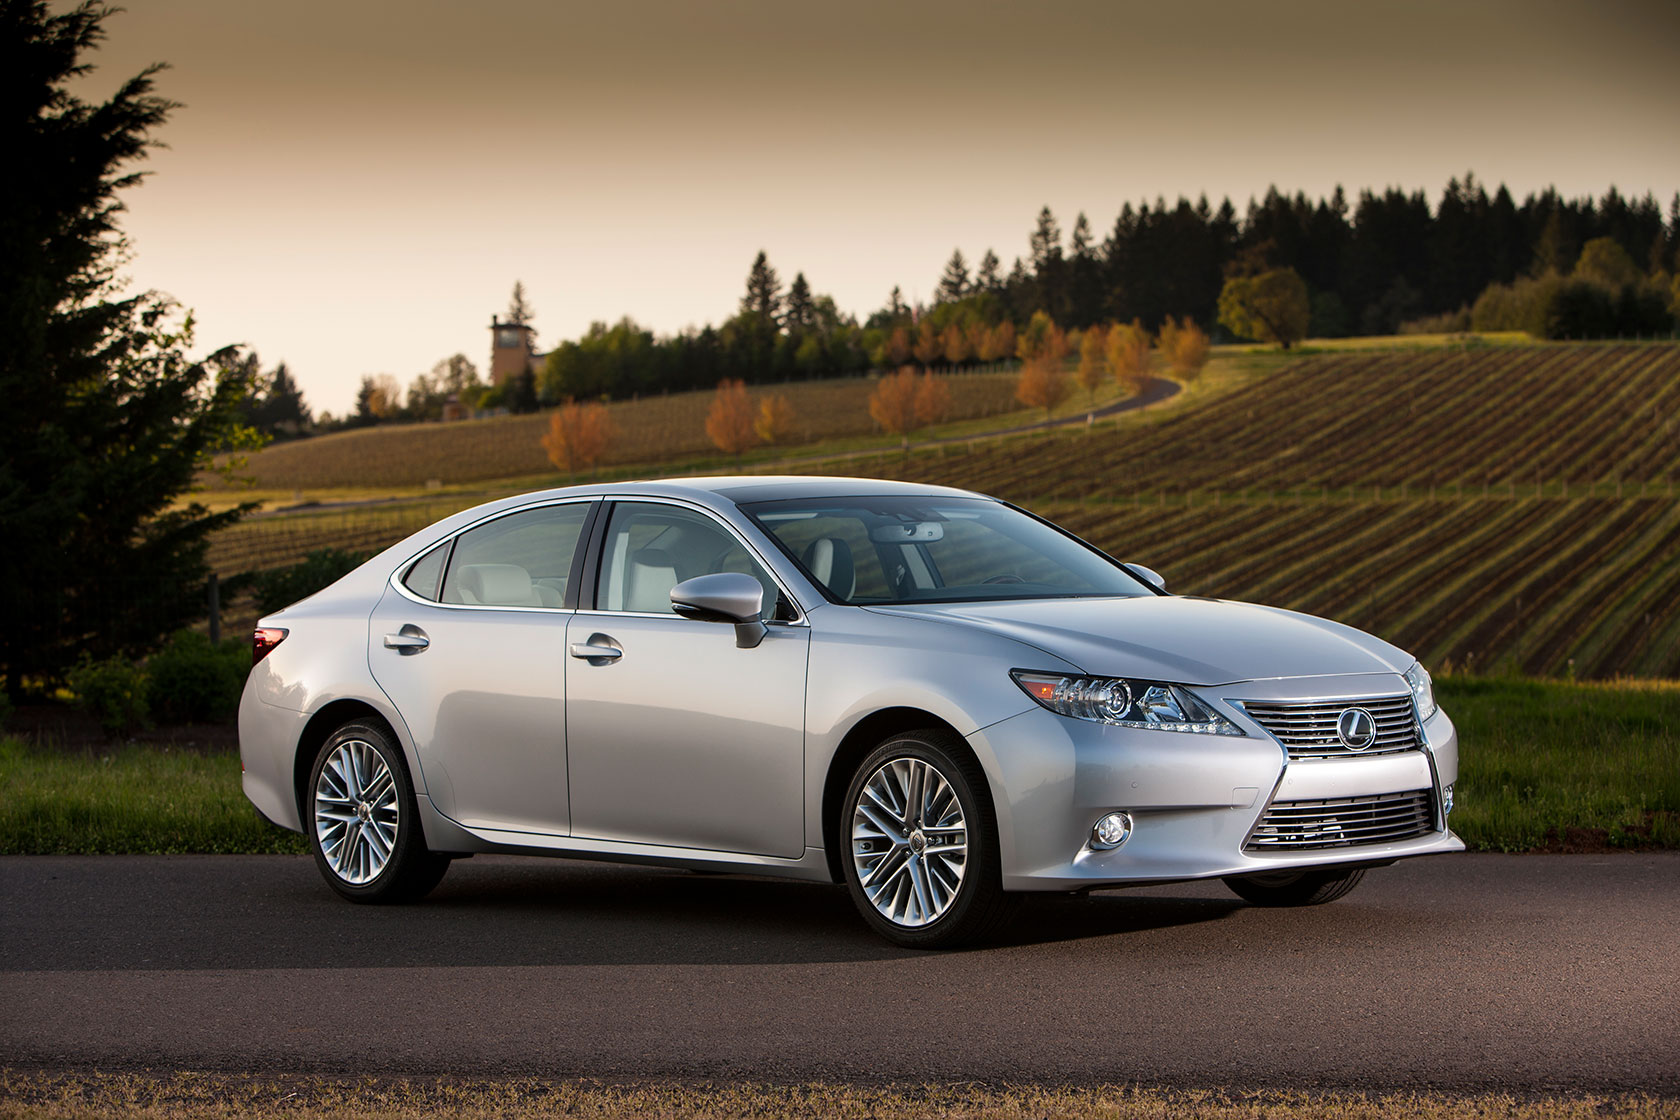 2013 lexus es350 es300h official press release full gallery. Black Bedroom Furniture Sets. Home Design Ideas